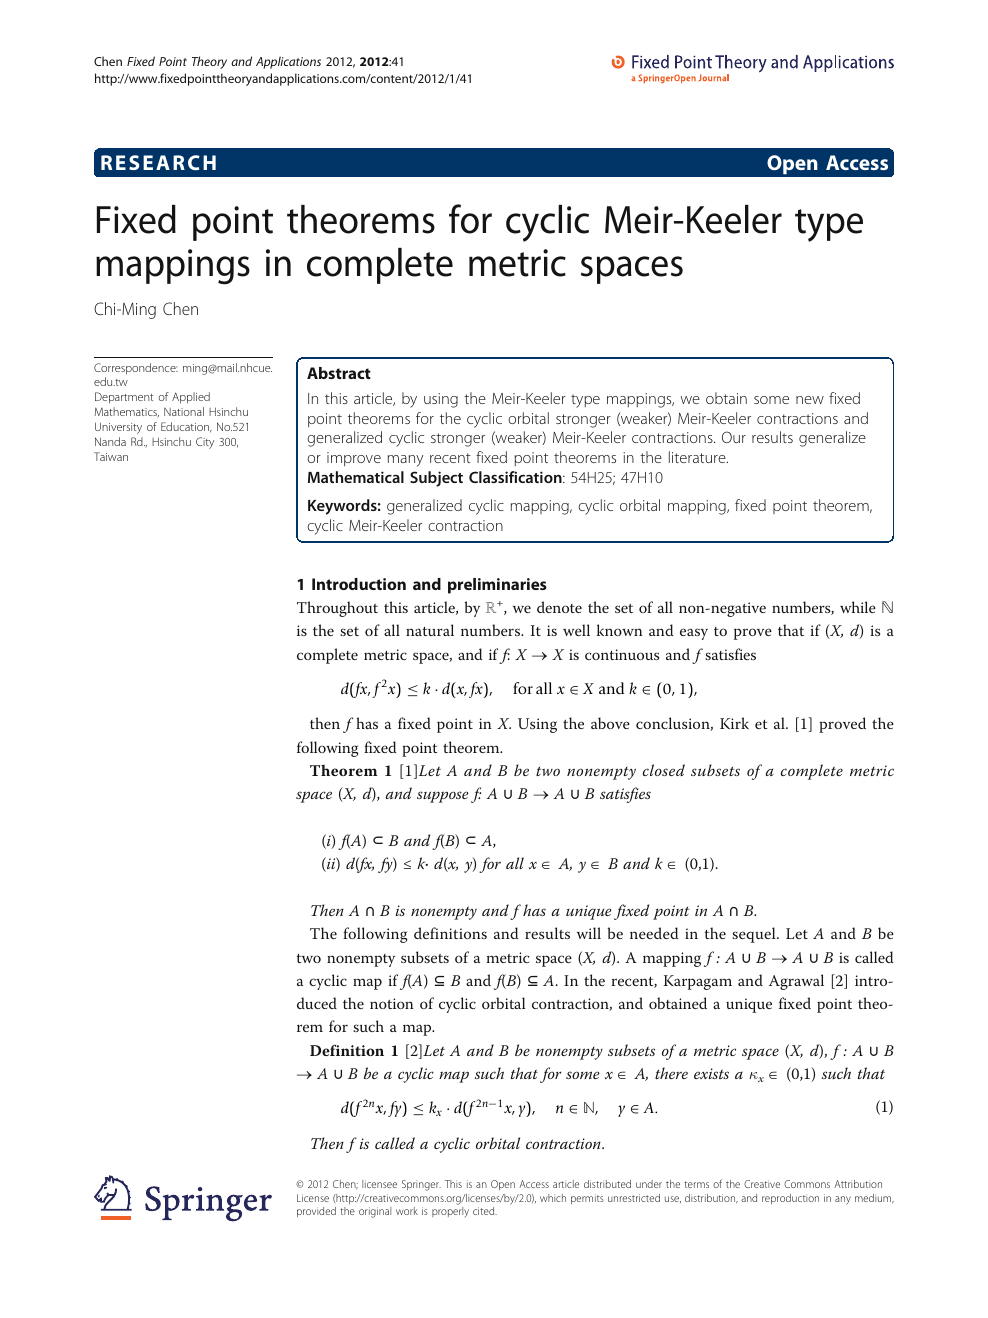 Fixed Point Theorems For Cyclic Meir Keeler Type Mappings In